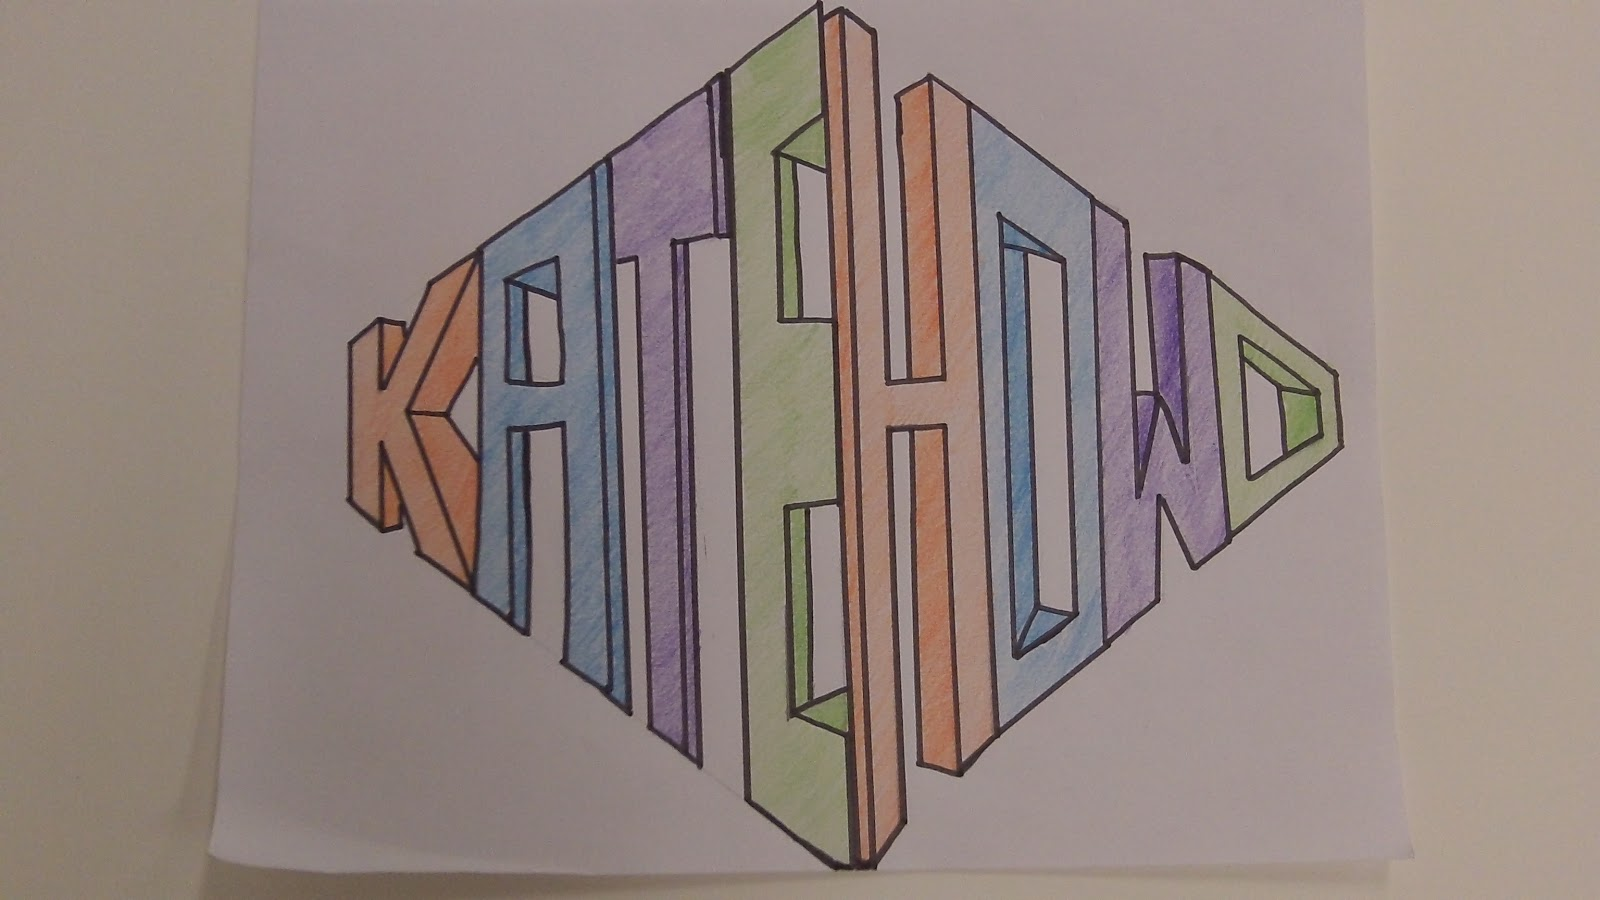 Kaitlyn S Art 1 Blog 2 Point Perspective